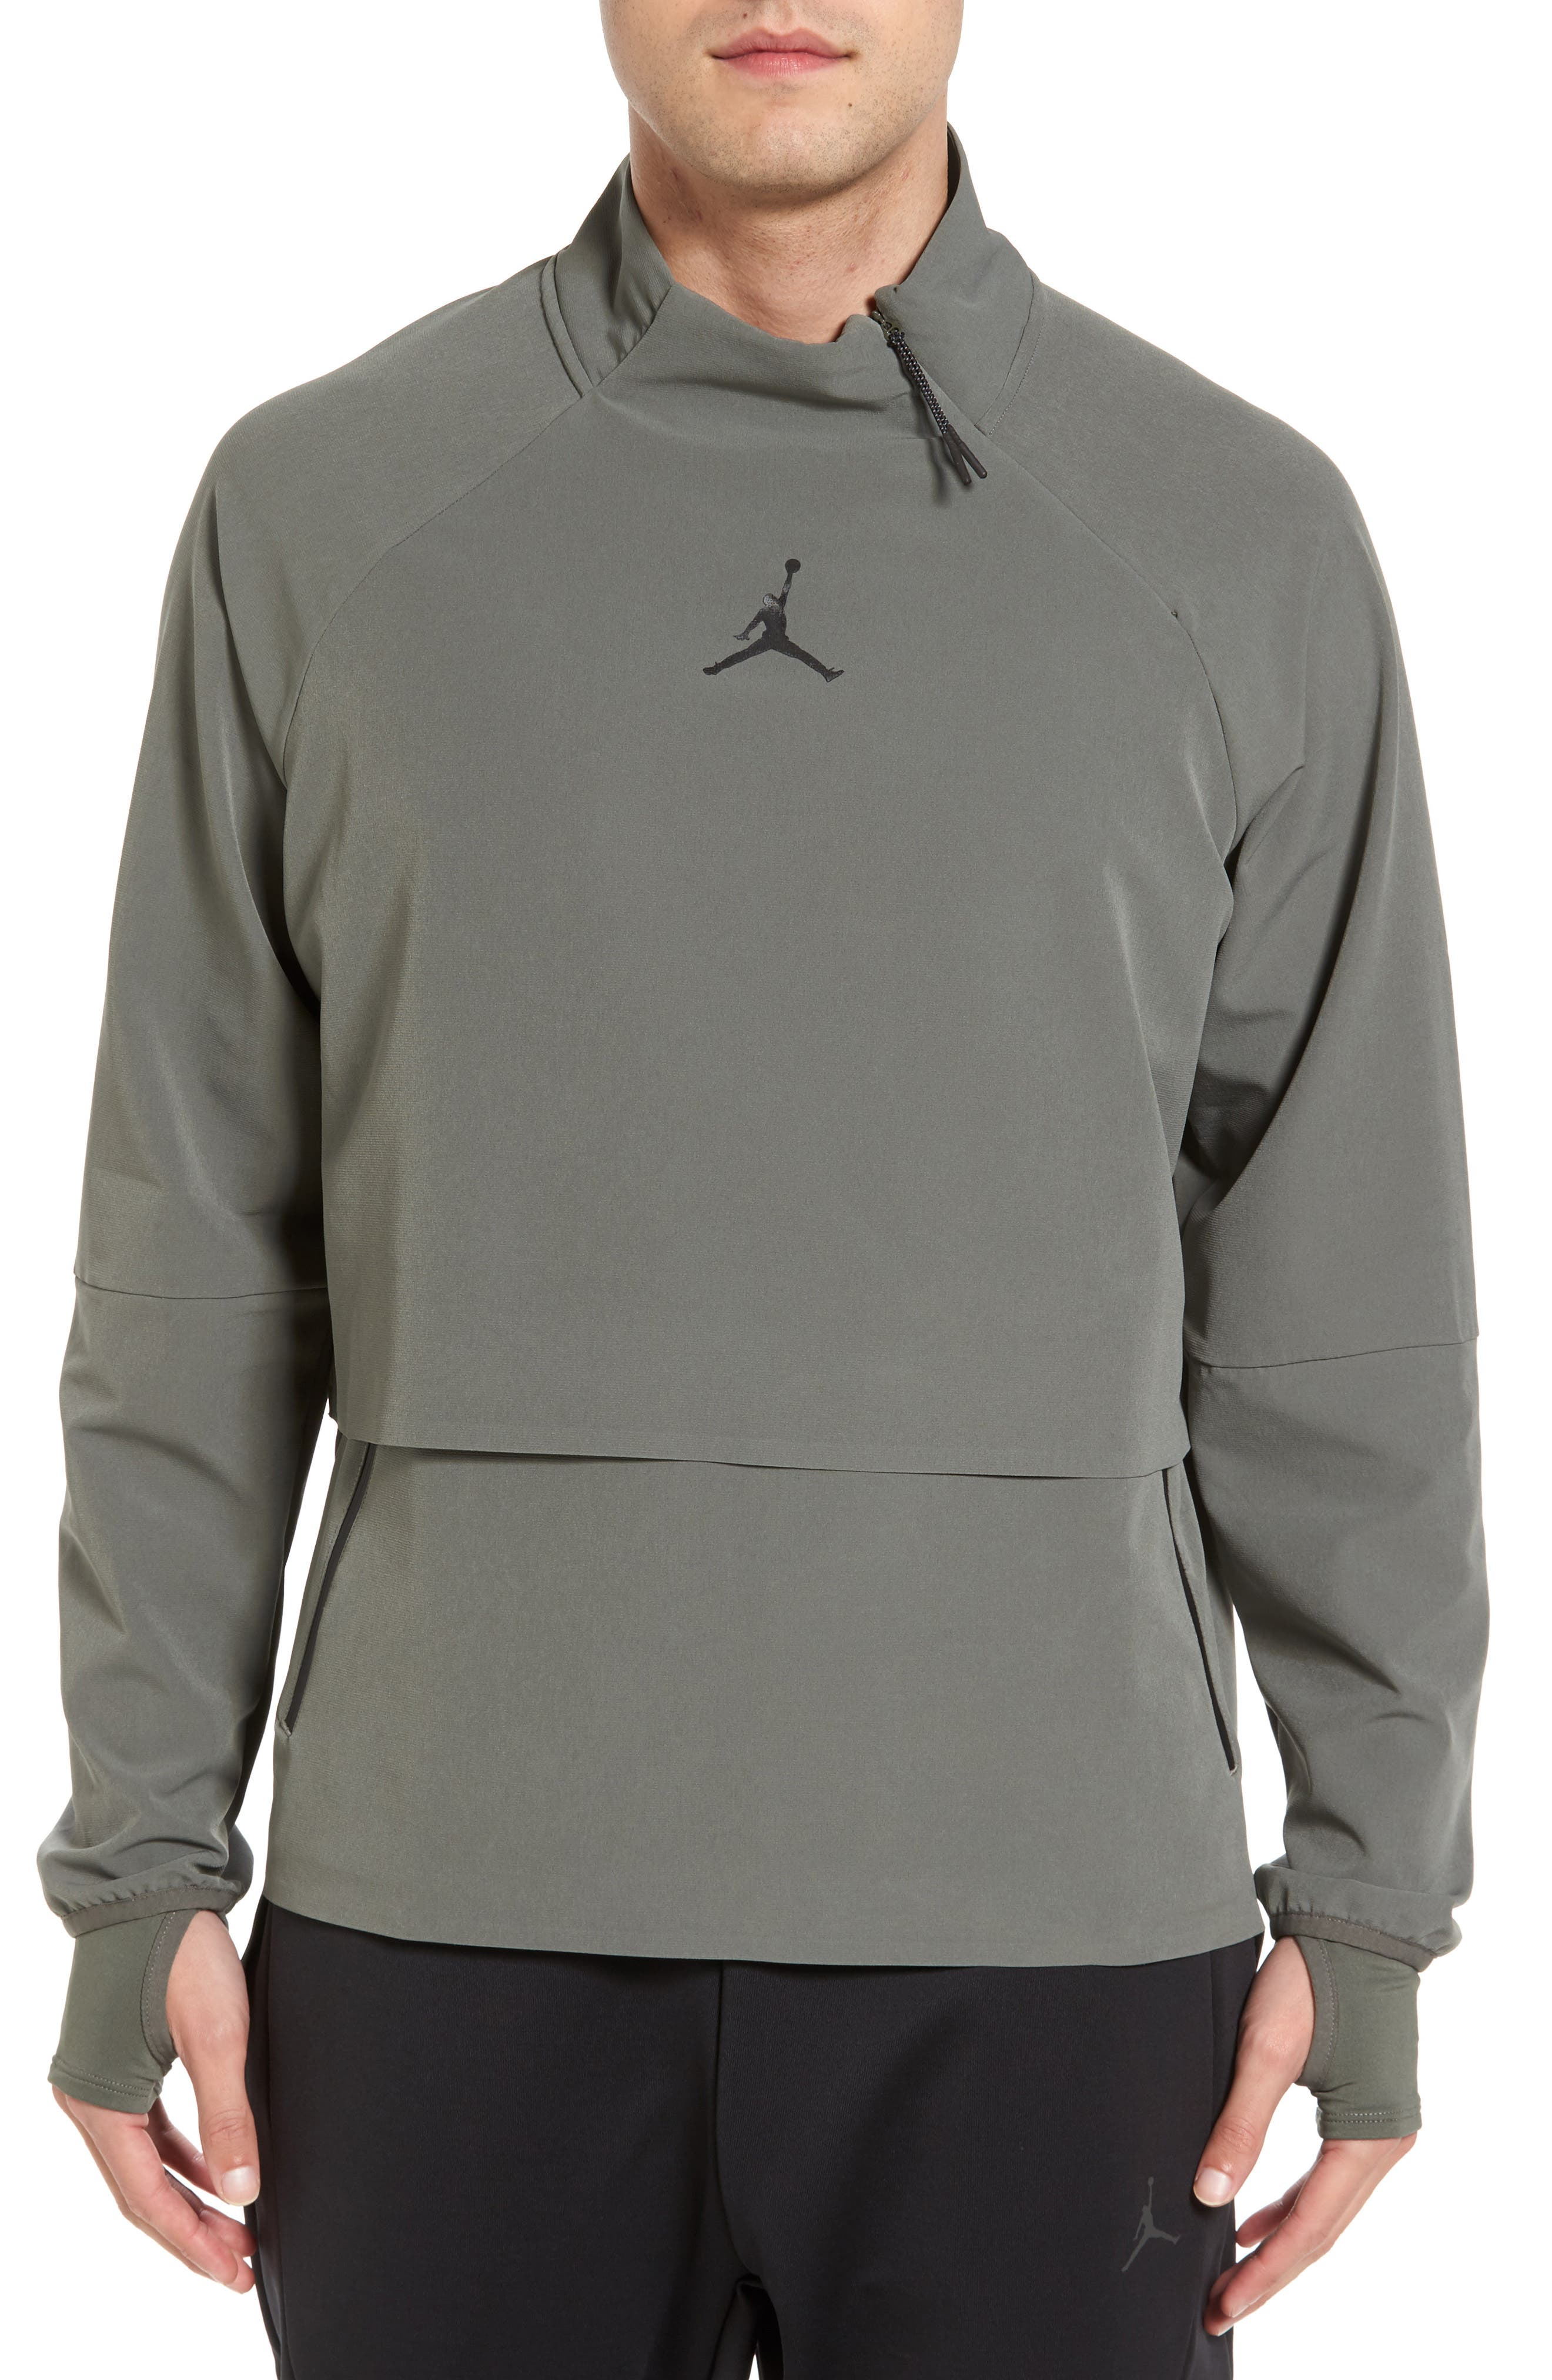 Nike Jordan 23 Tech Shield Jacket